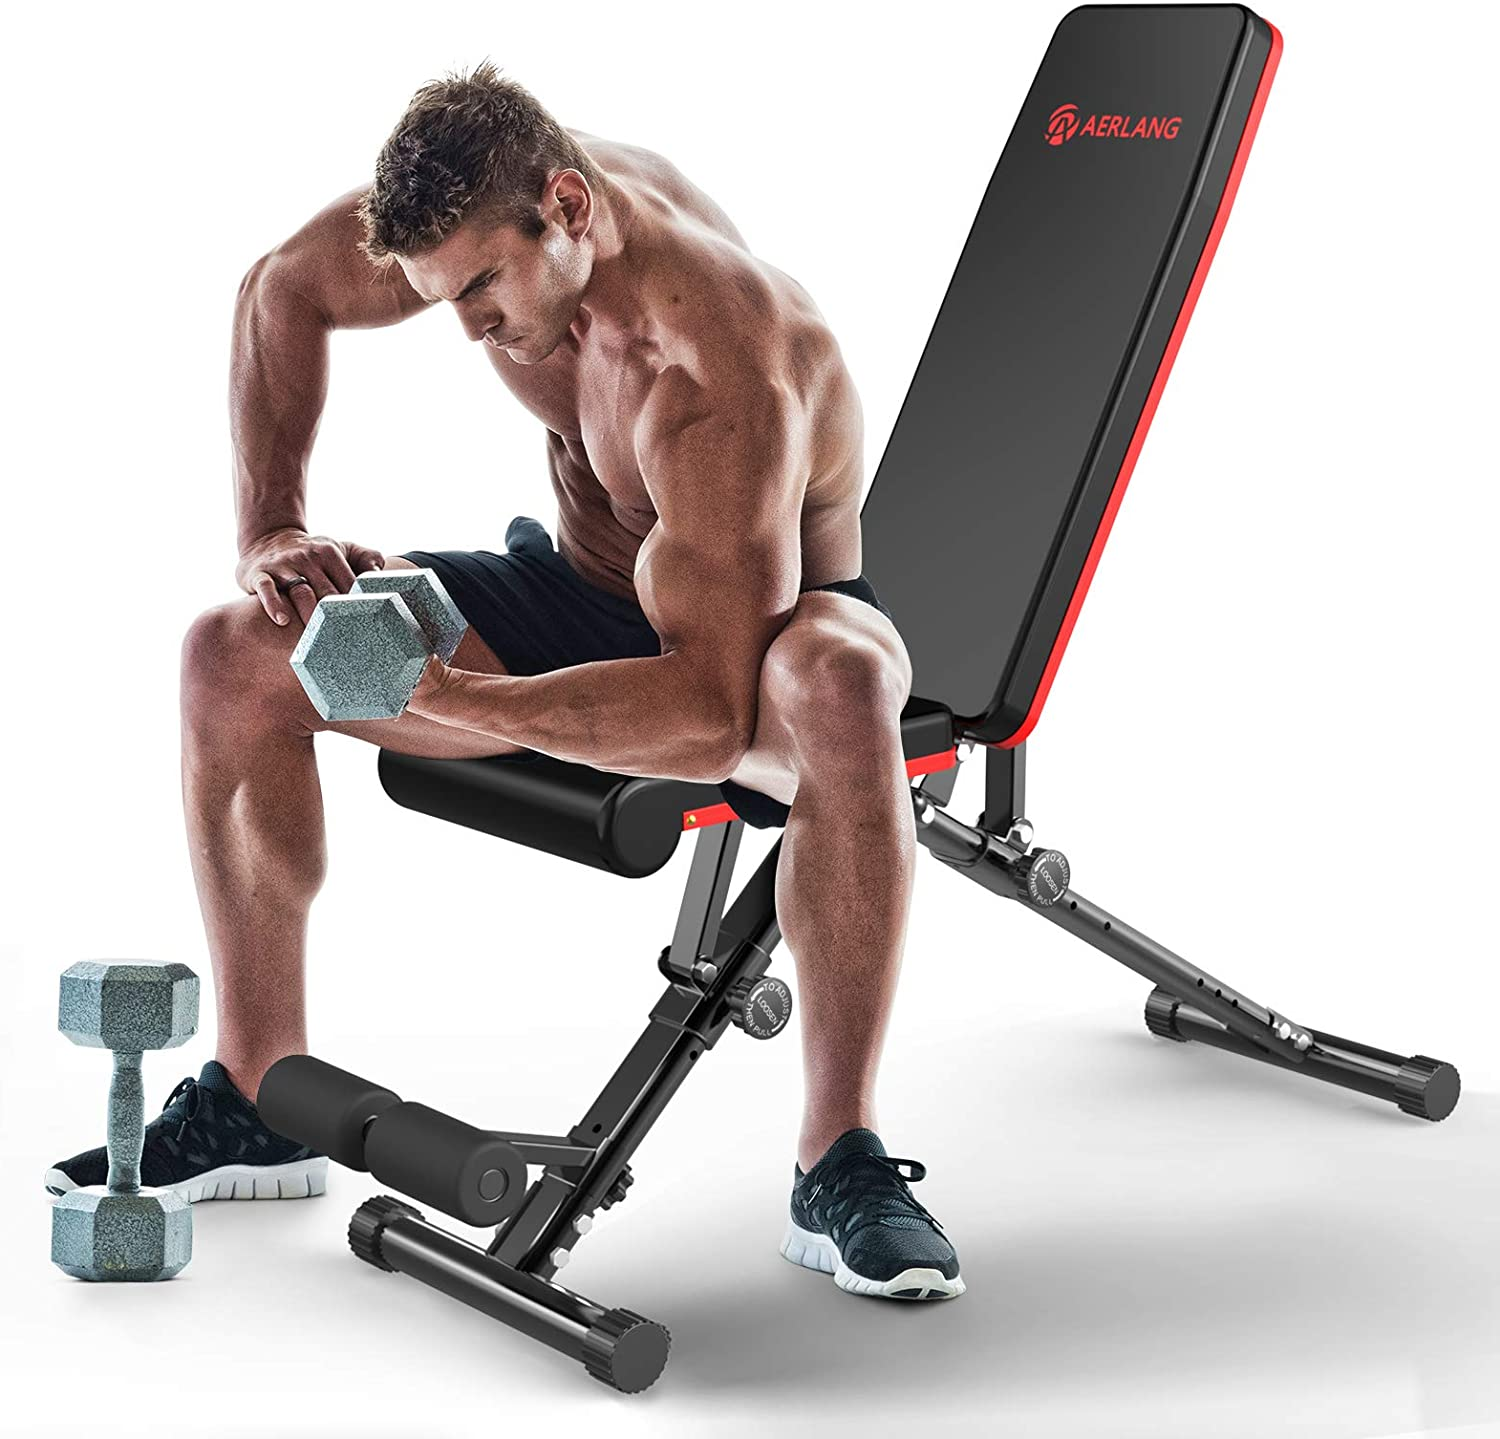 550lbs Adjustable Weight Bench Incline Decline Foldable Full Body Workout Gym US